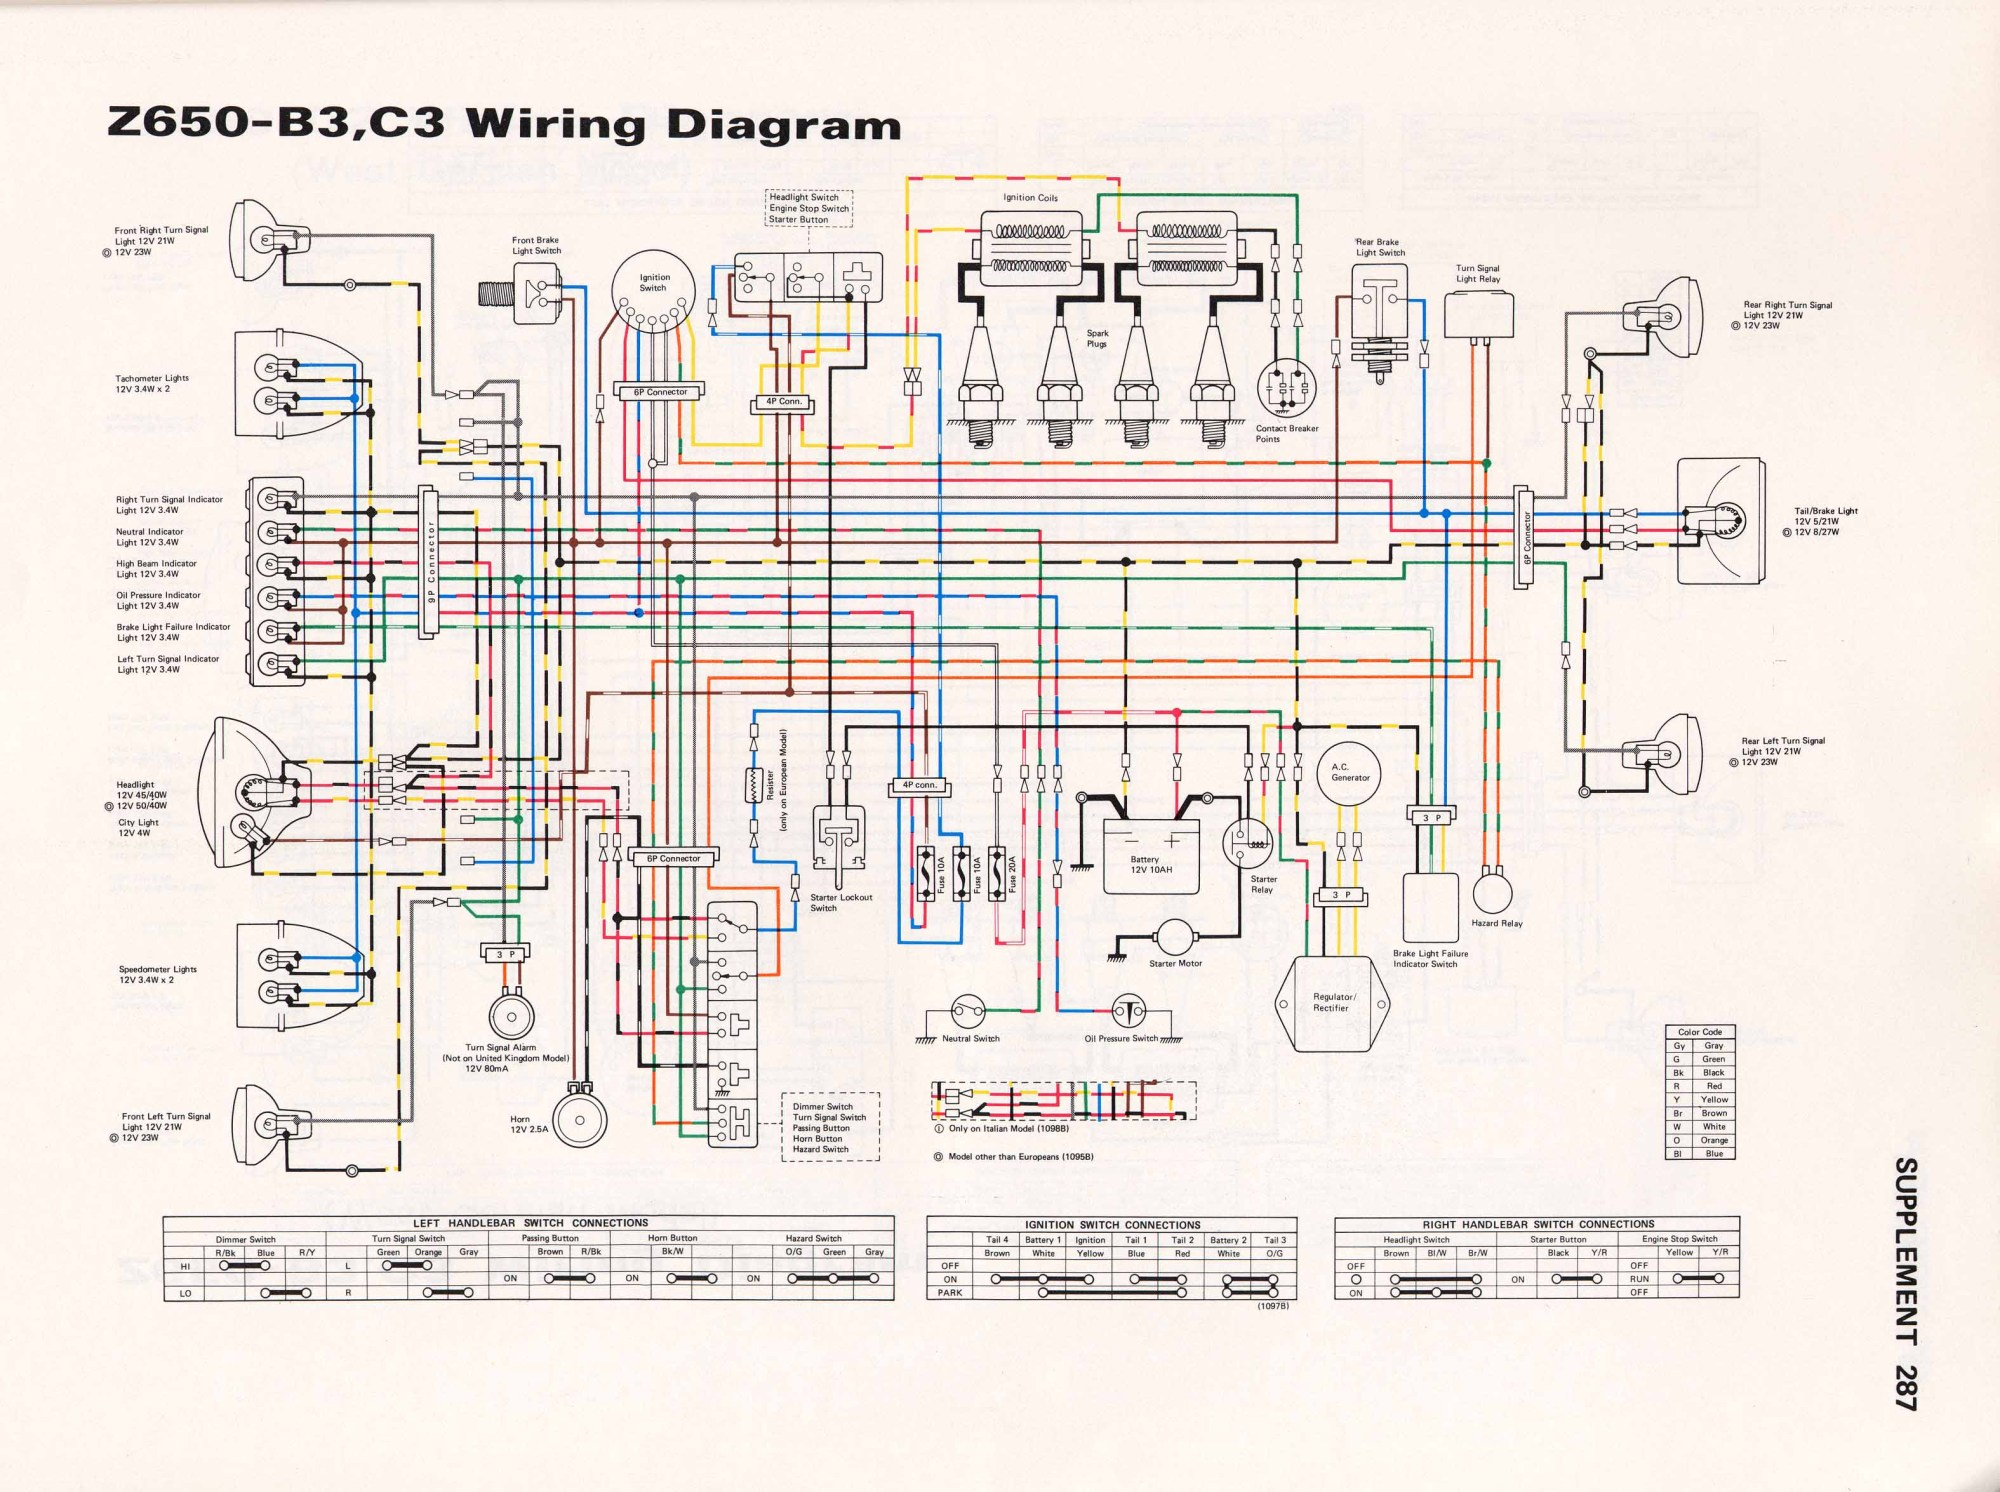 hight resolution of wiring diagrams 1977 xs650d jpg z650 b3